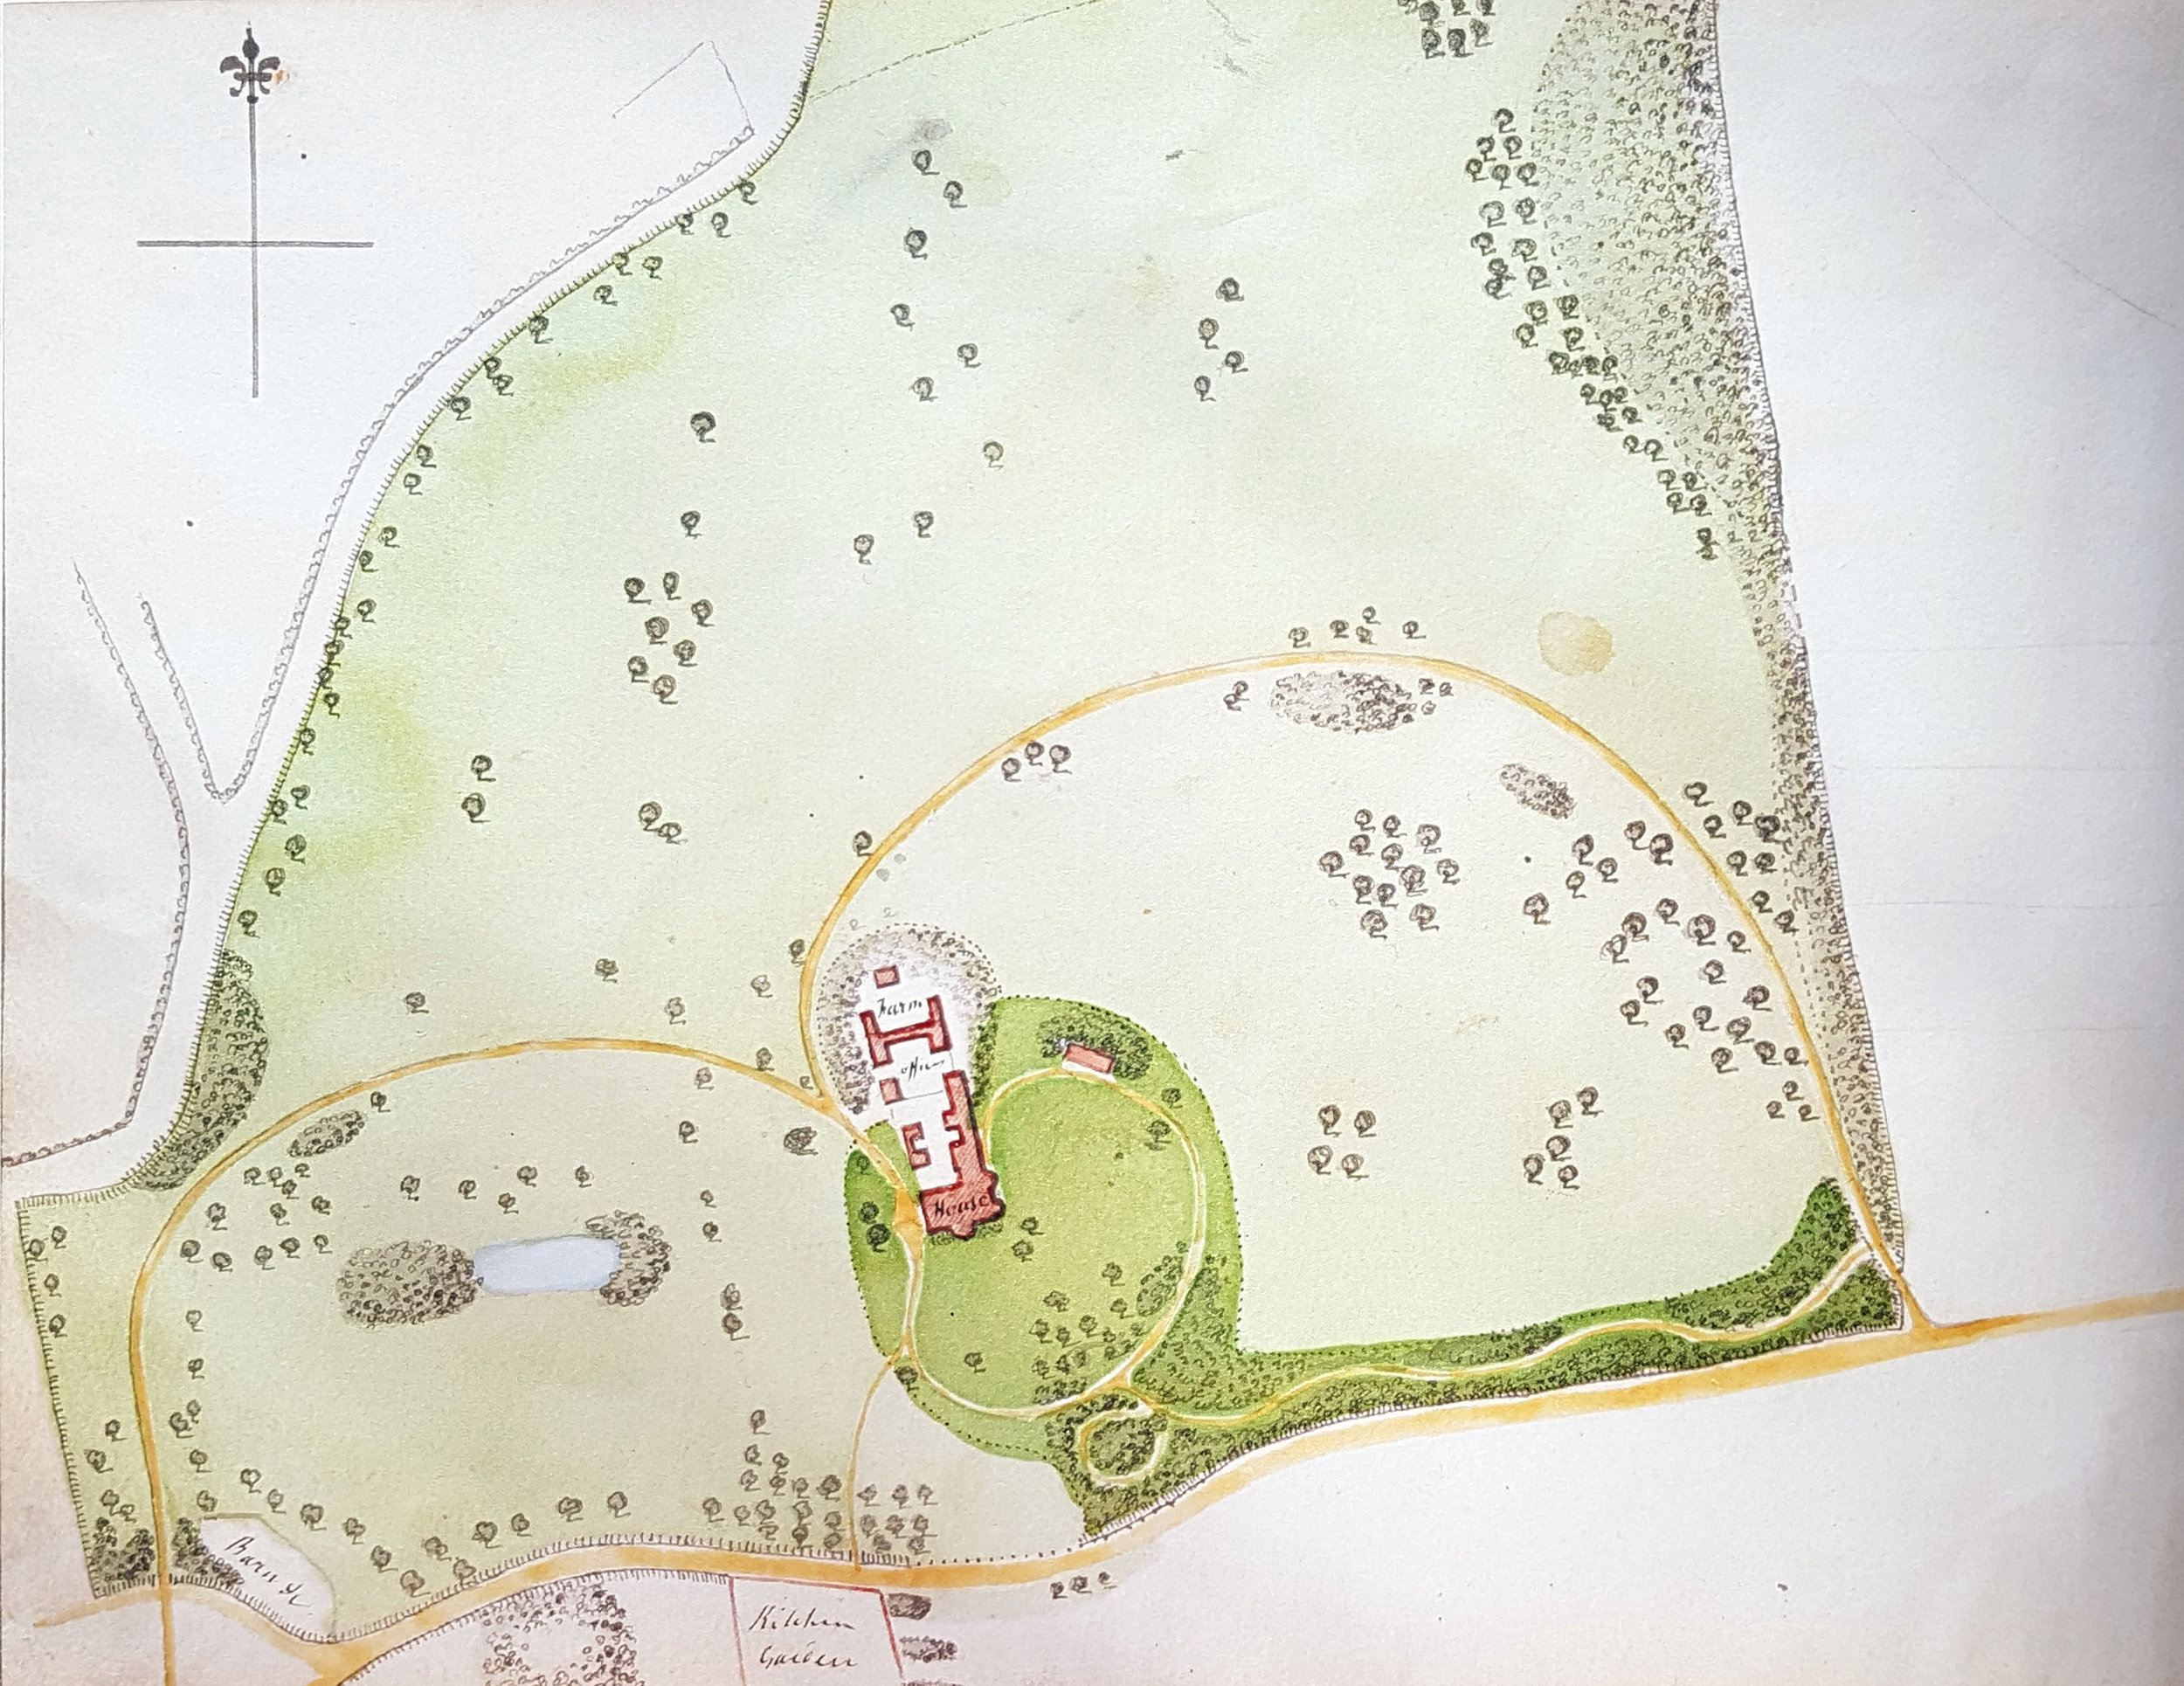 Plan of Hatchlands from Humphry Repton's 'Red Book' 1800